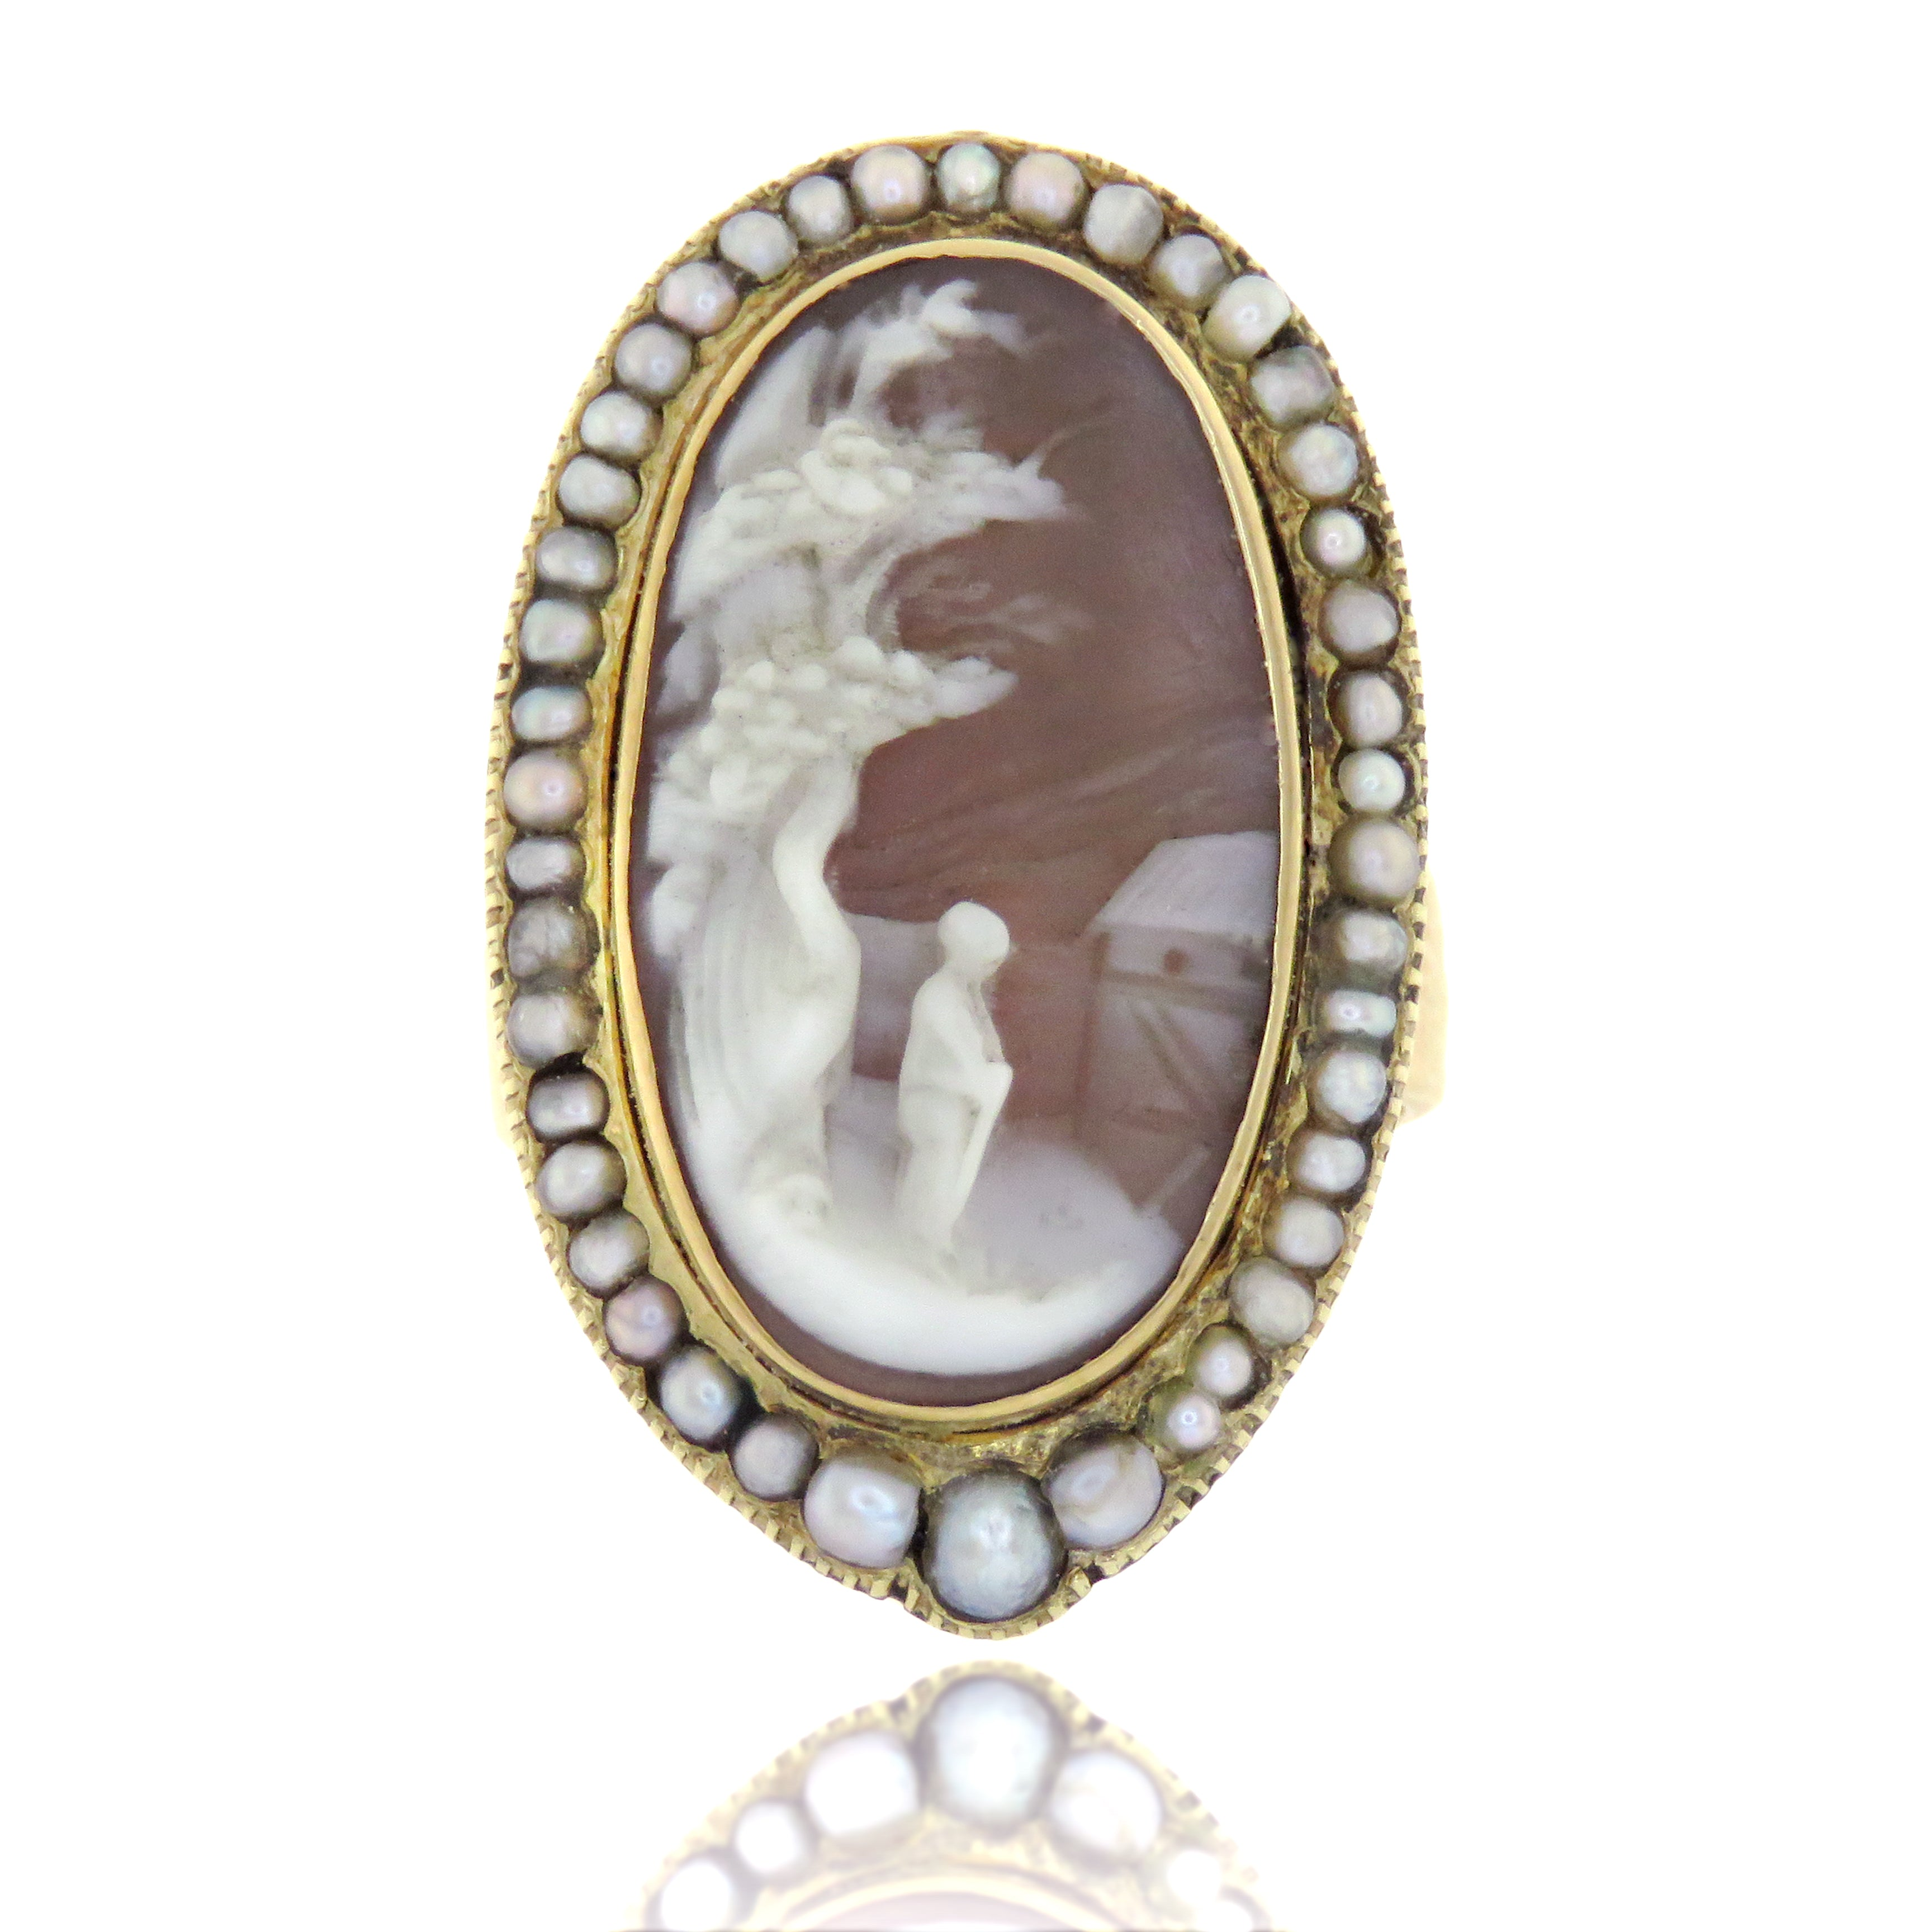 15ct Scenic Cameo Ring with Pearls